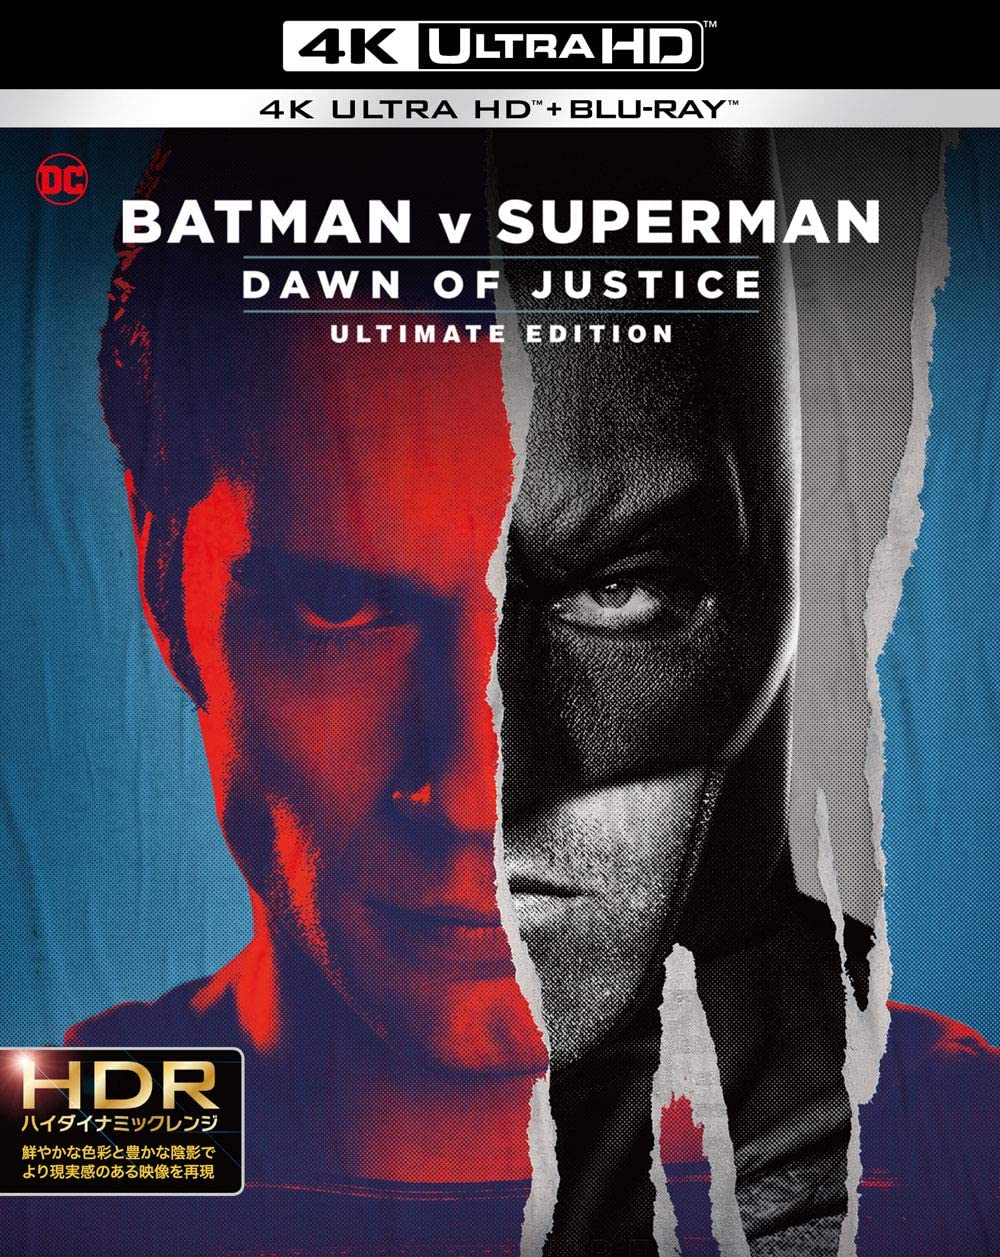 バットマン vs スーパーマン ジャスティスの誕生 Amazon.co.jp Japan Batman v Superman: Dawn Of Justice: Ultimate Edition